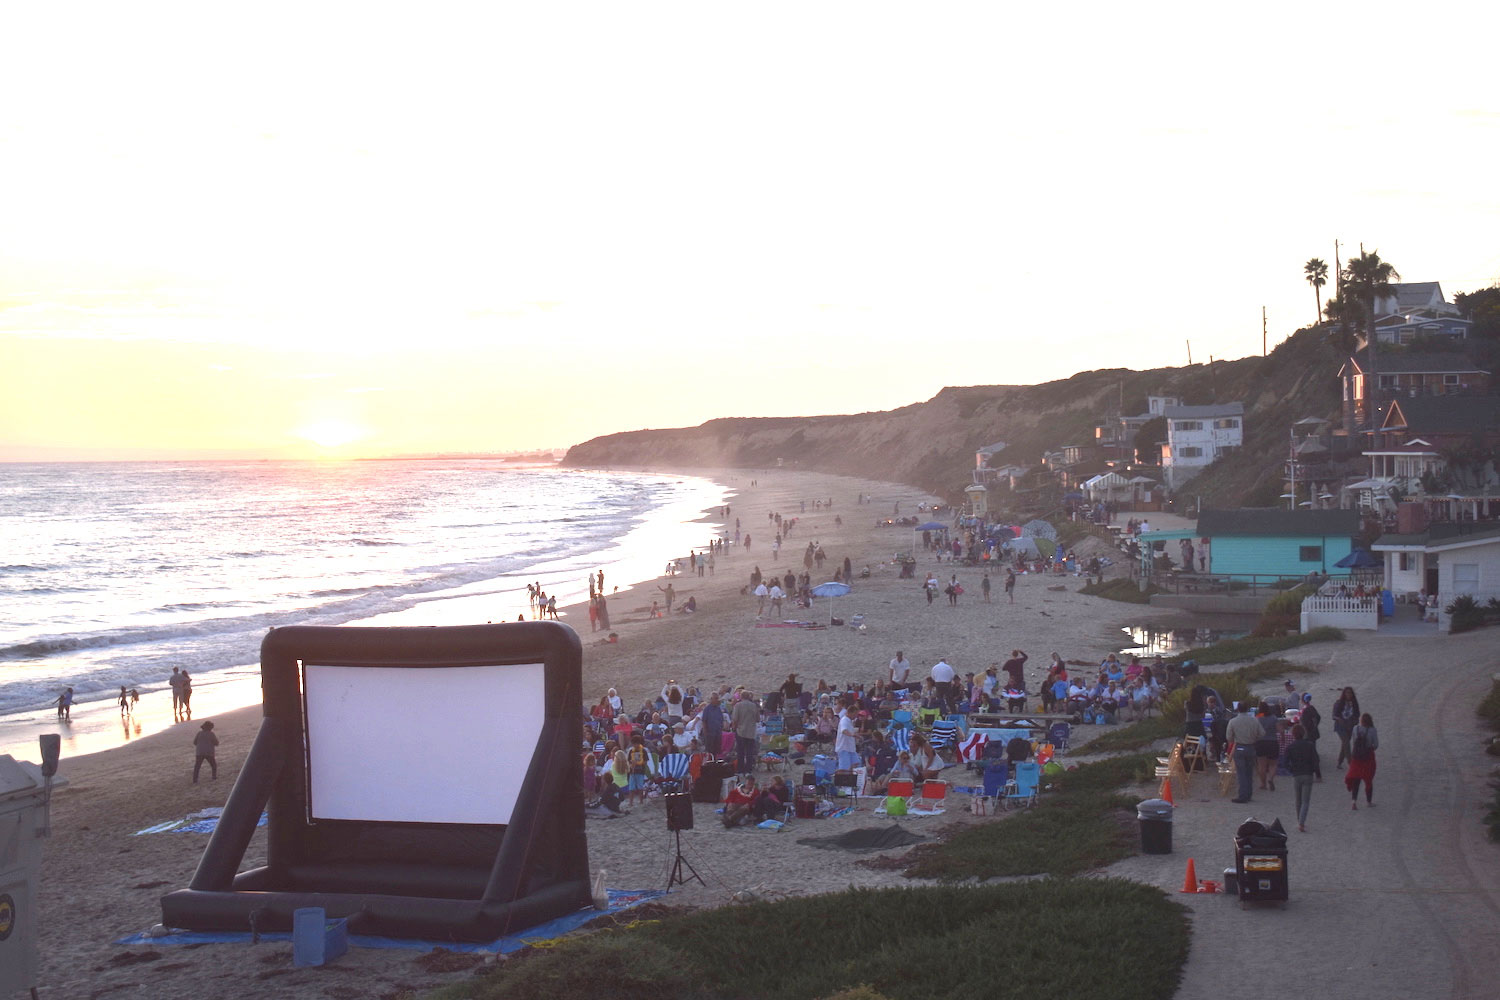 Movies on the Beach movie screen